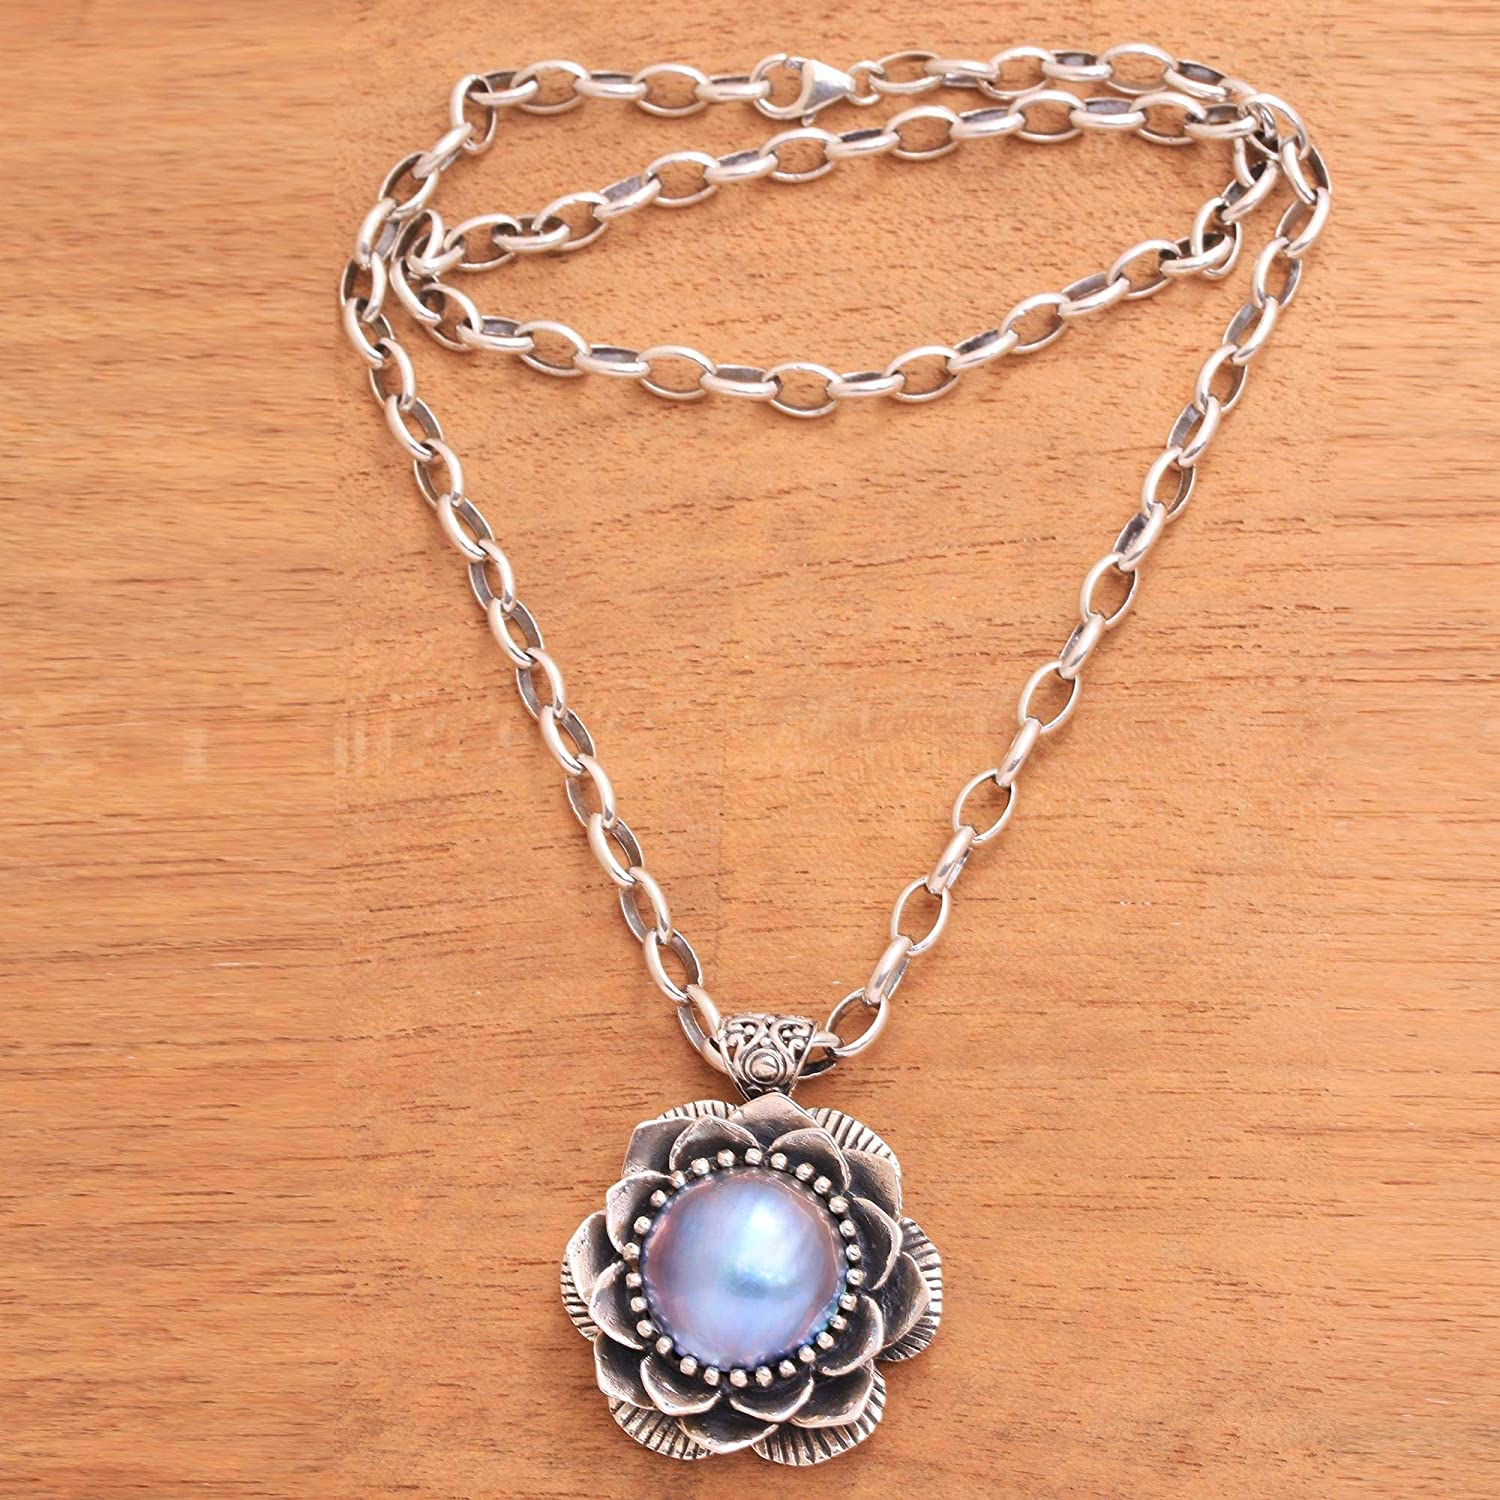 19.75 NOVICA Dyed Blue Cultured Freshwater Pearl .925 Sterling Silver Necklace Sky Lotus